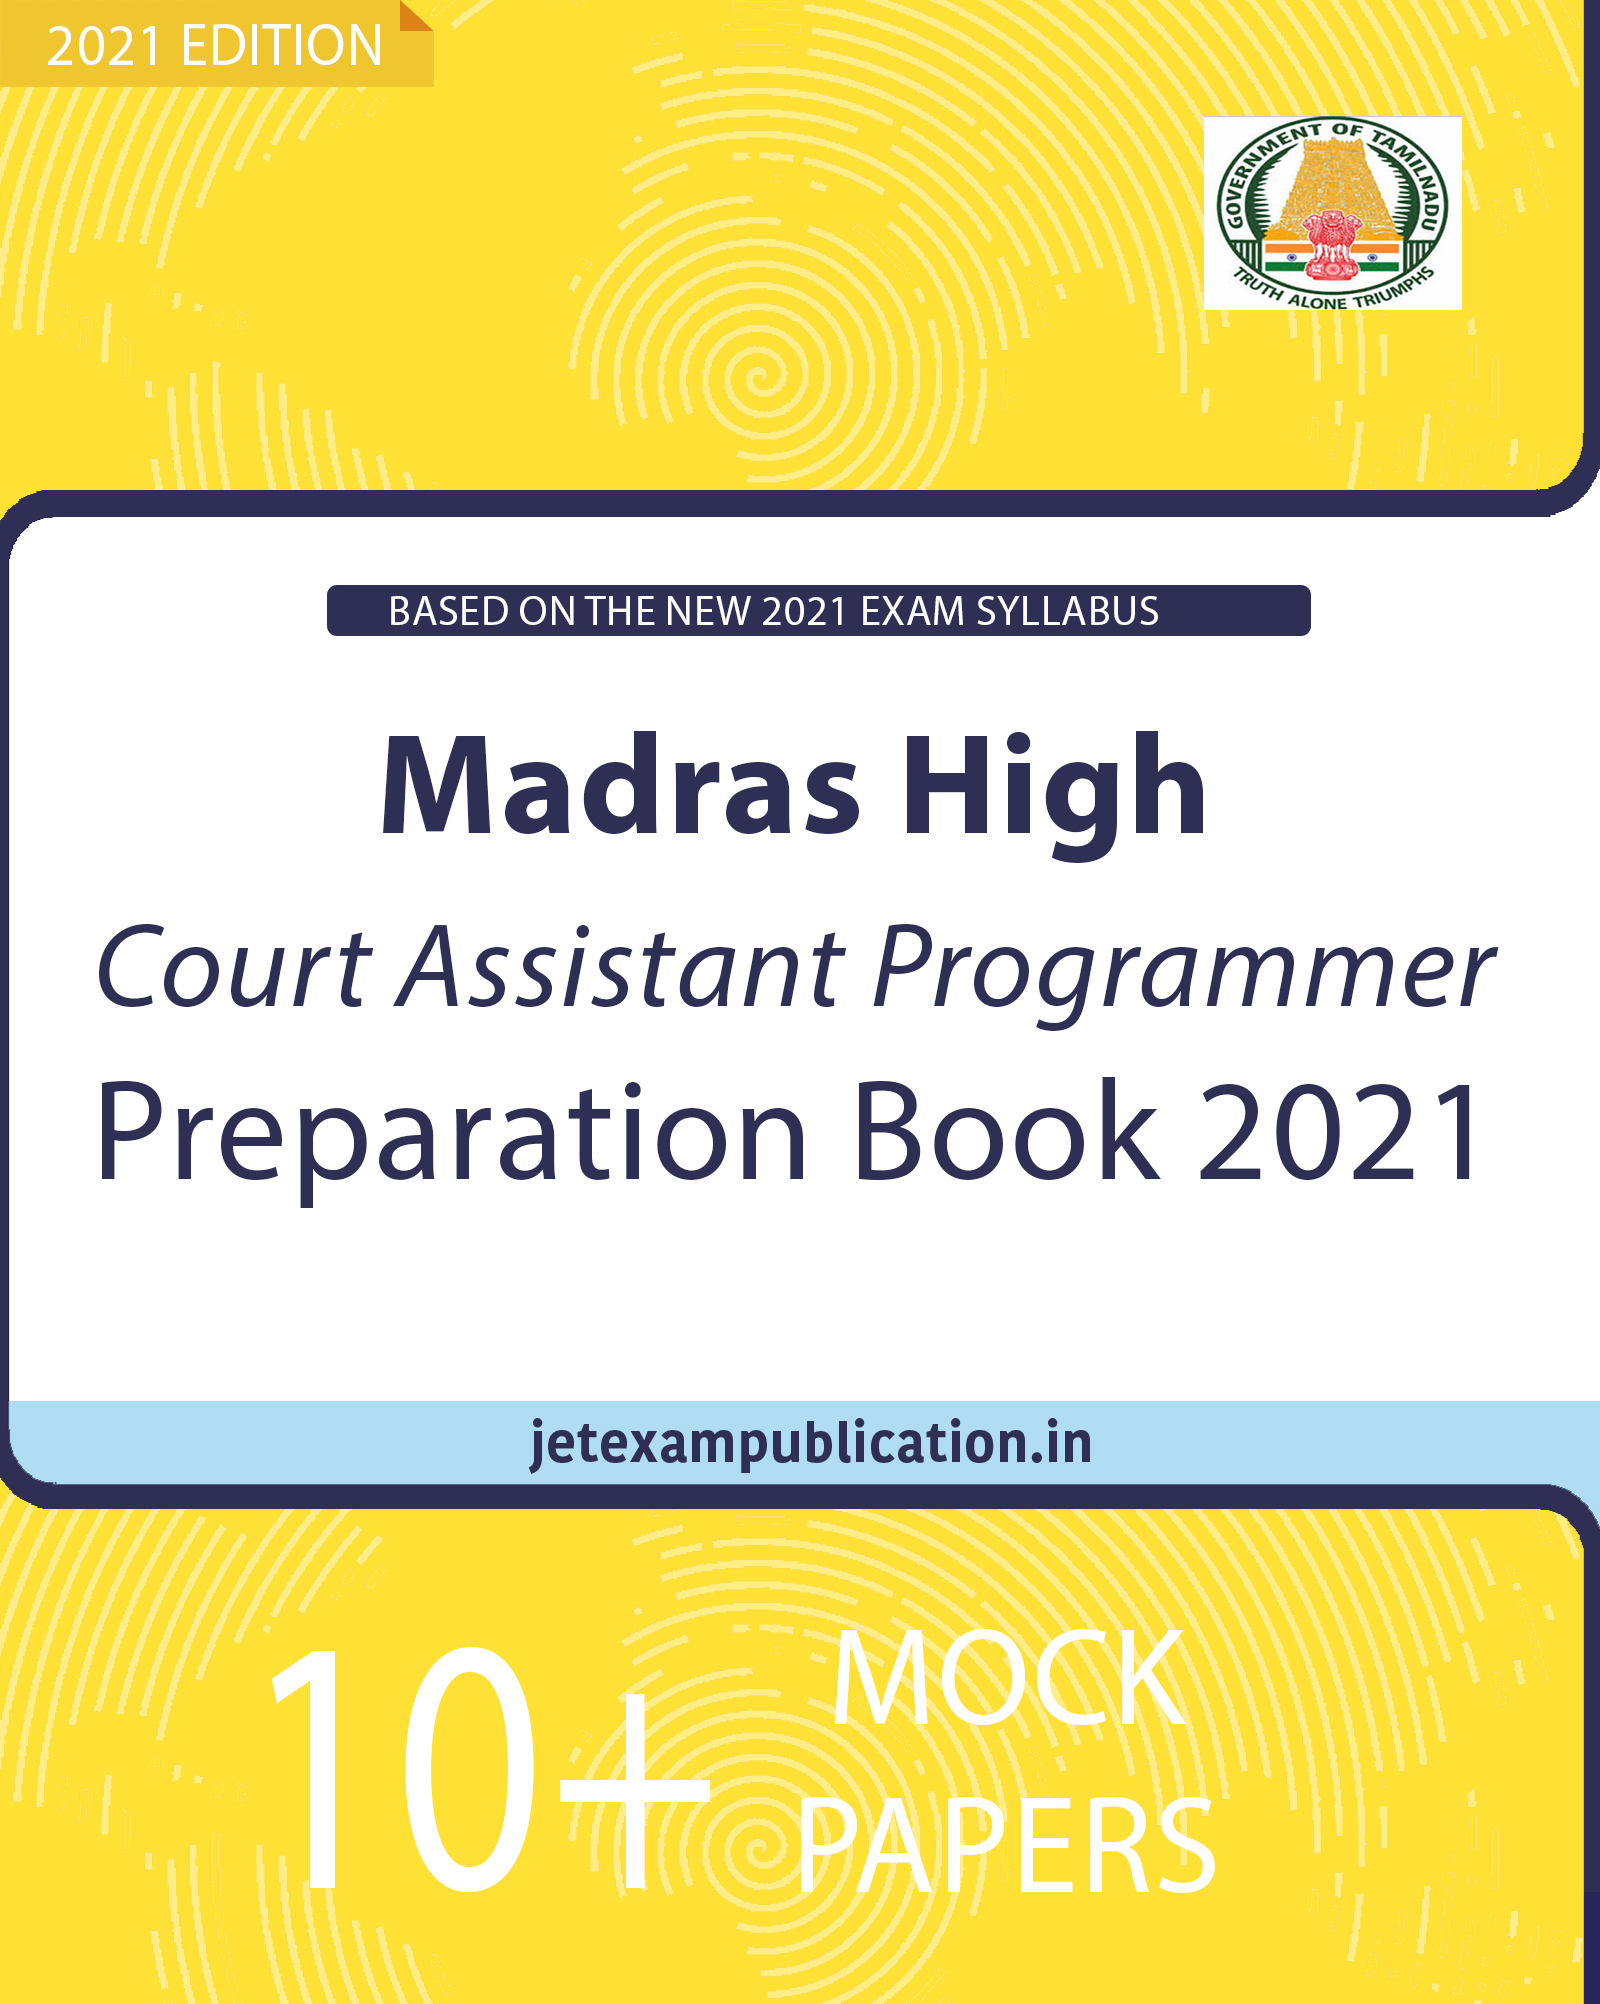 Madras High Court Assistant Programmer Preparation Book 2021